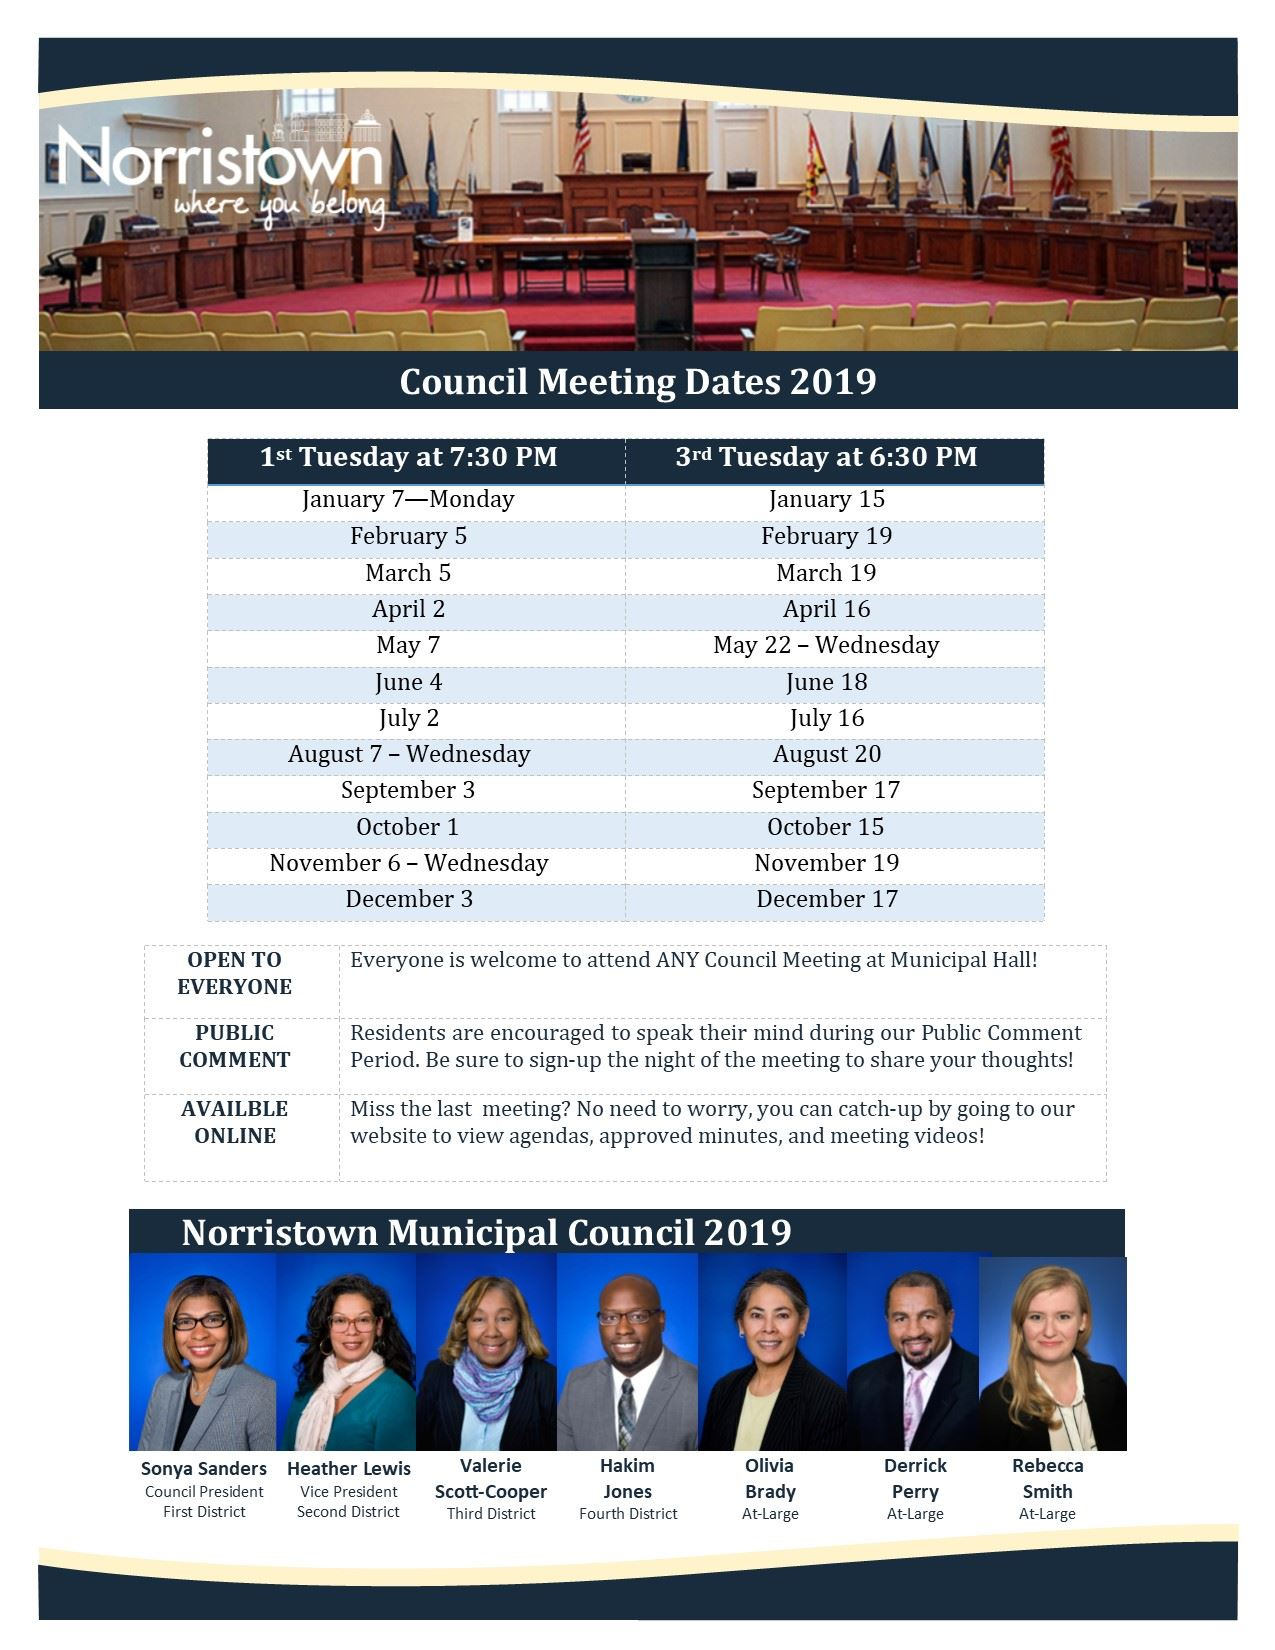 2019 Council Meeting Schedule